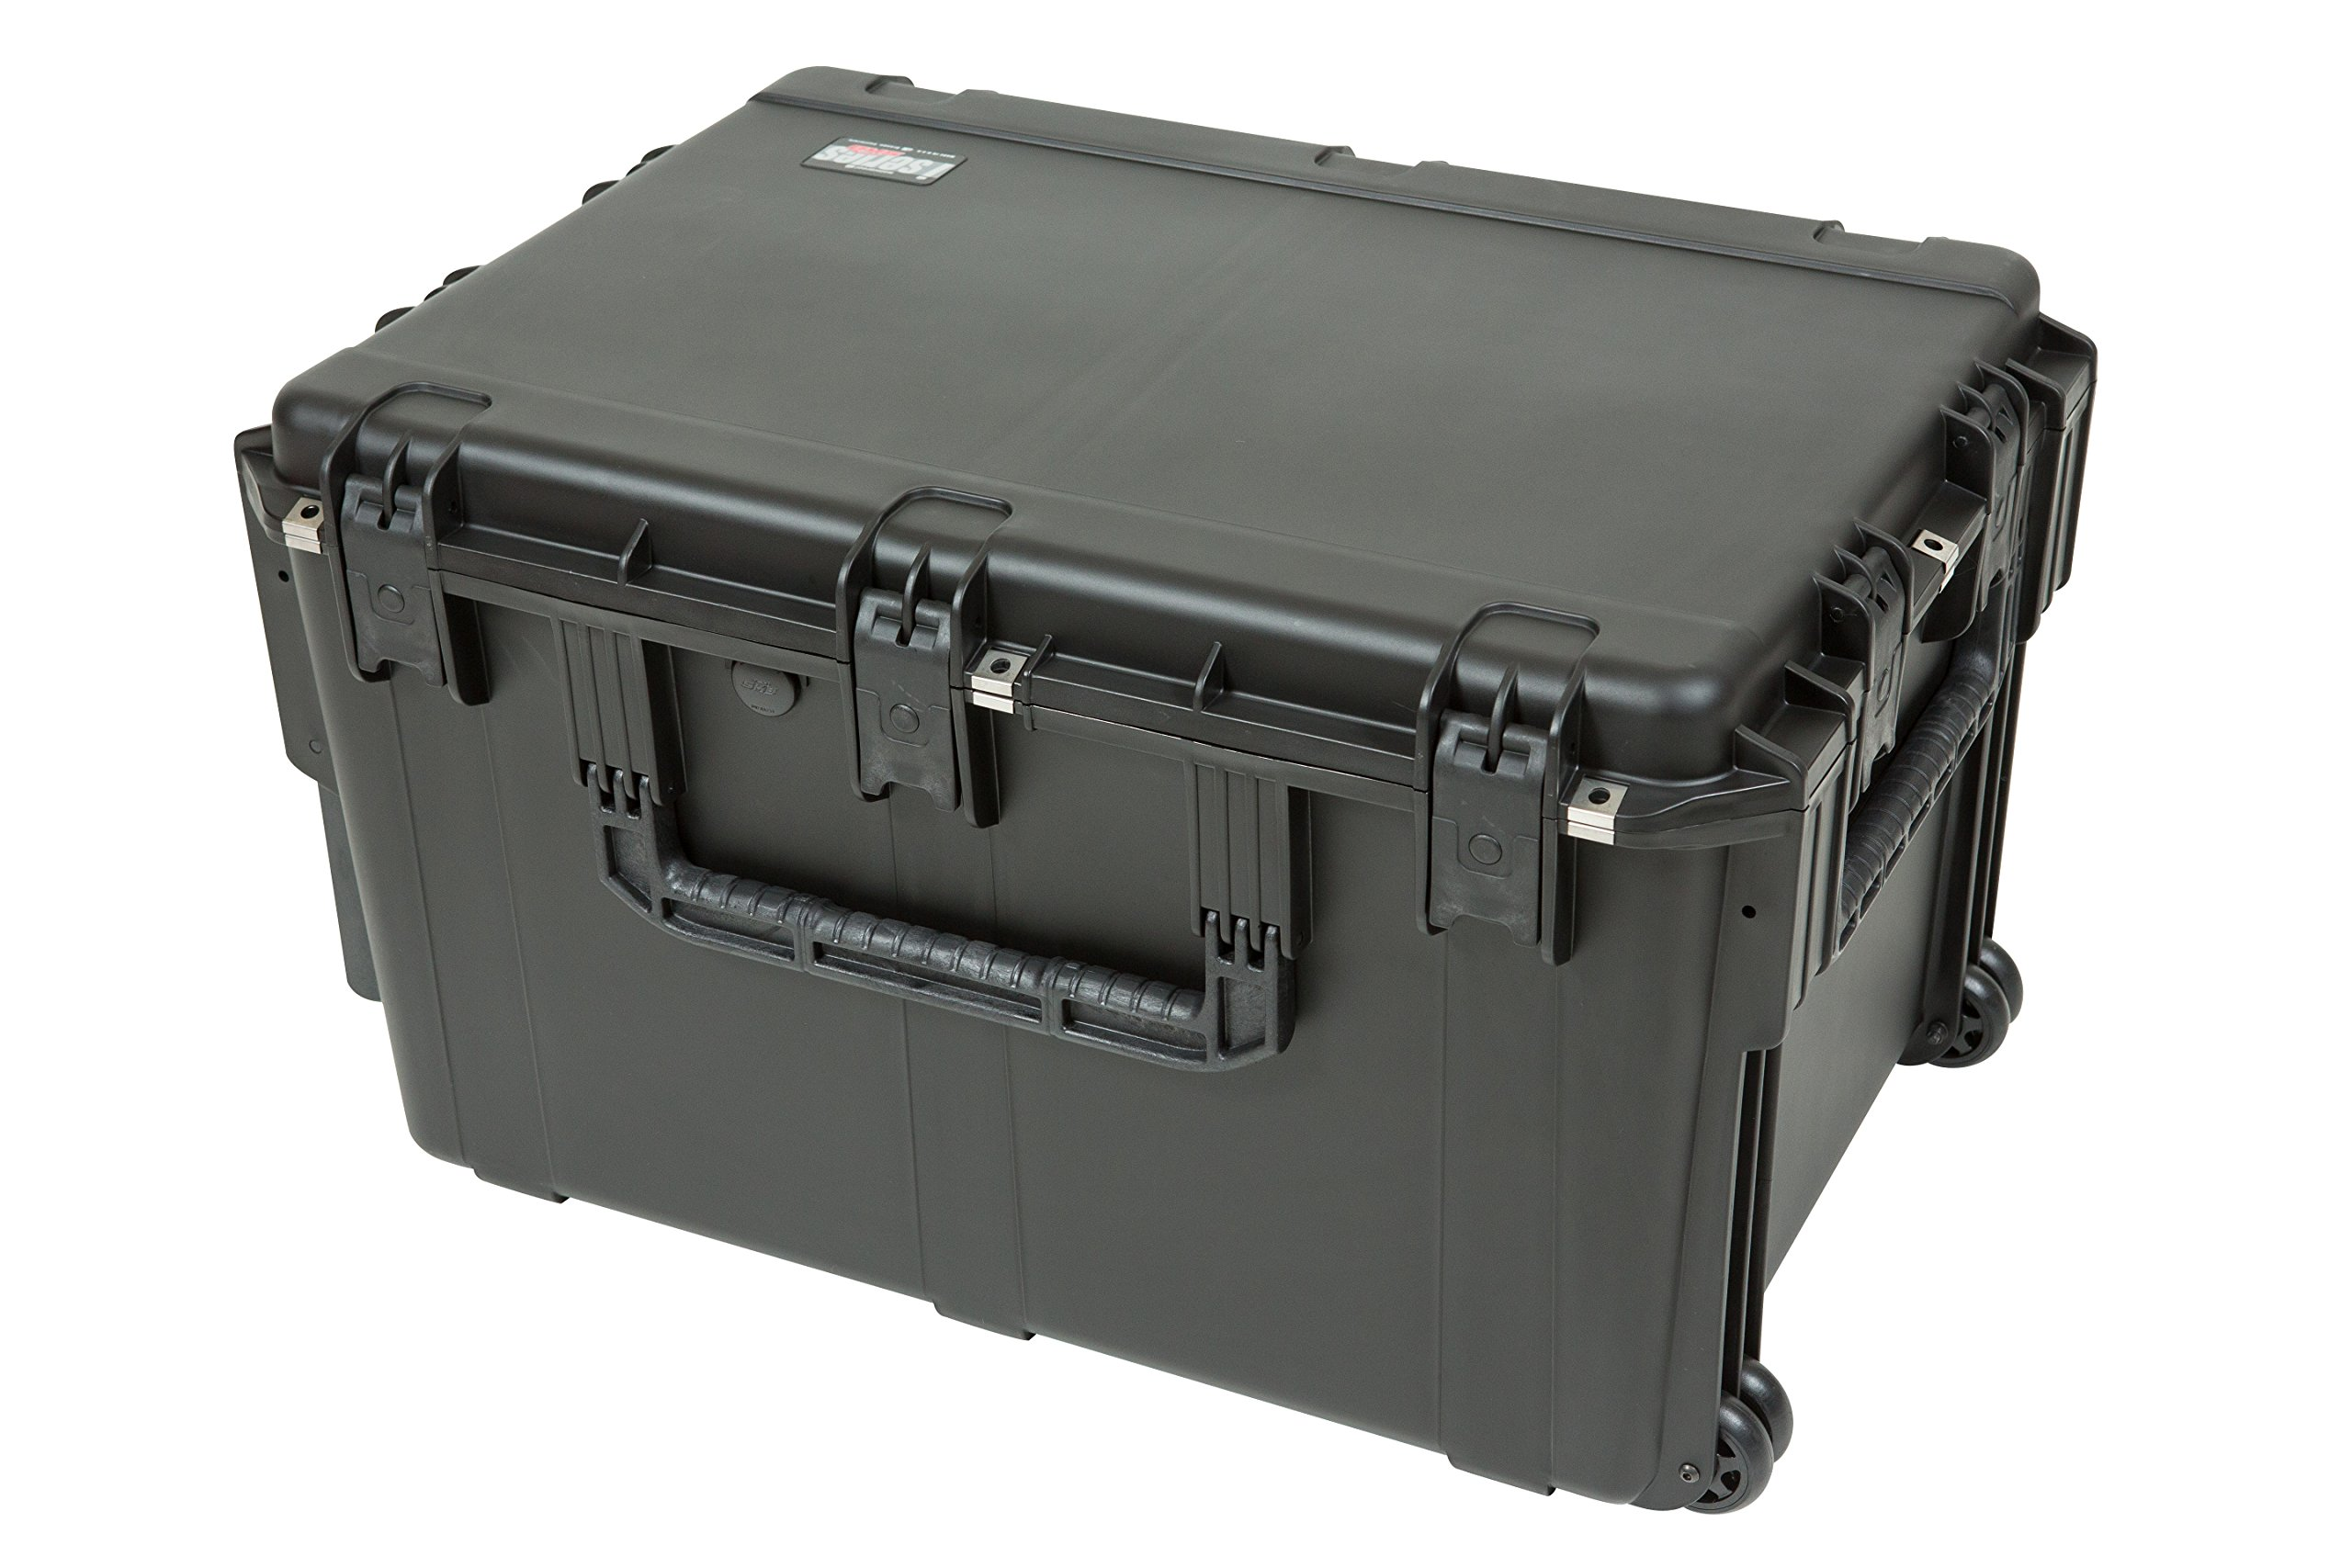 SKB 3I-3021-18BC 30 x 21 x 18 Inches Audio Utility Case with Wheels and Cubed Foam